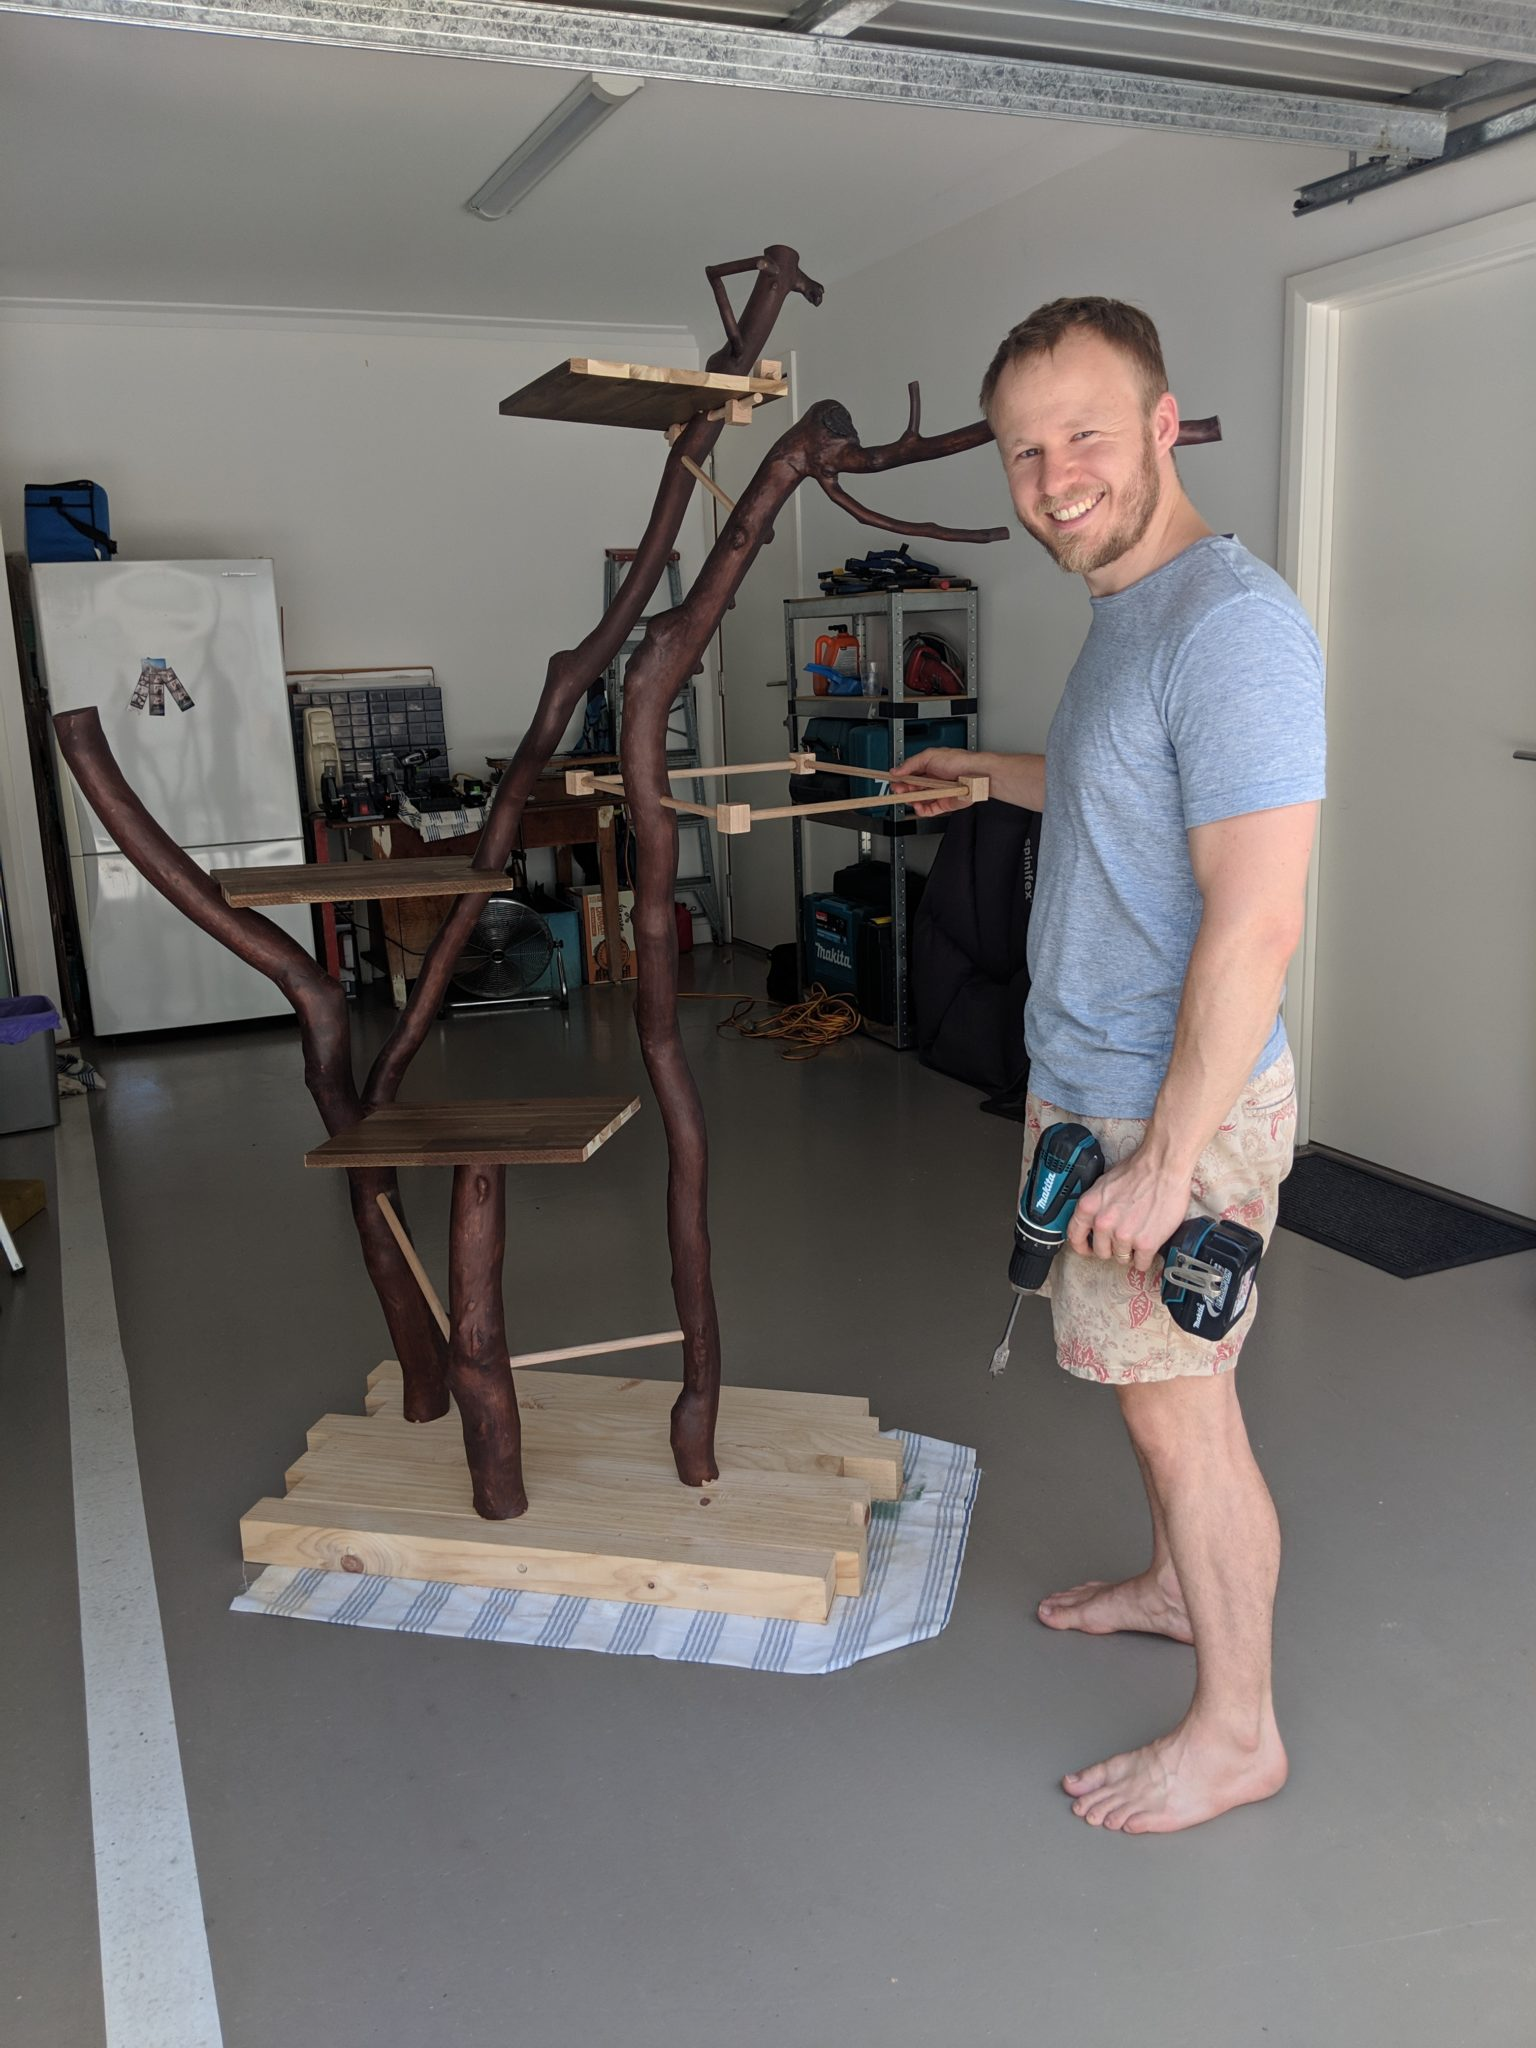 Martin Henrion constructs a gorgeous homemade cat tree with found materials